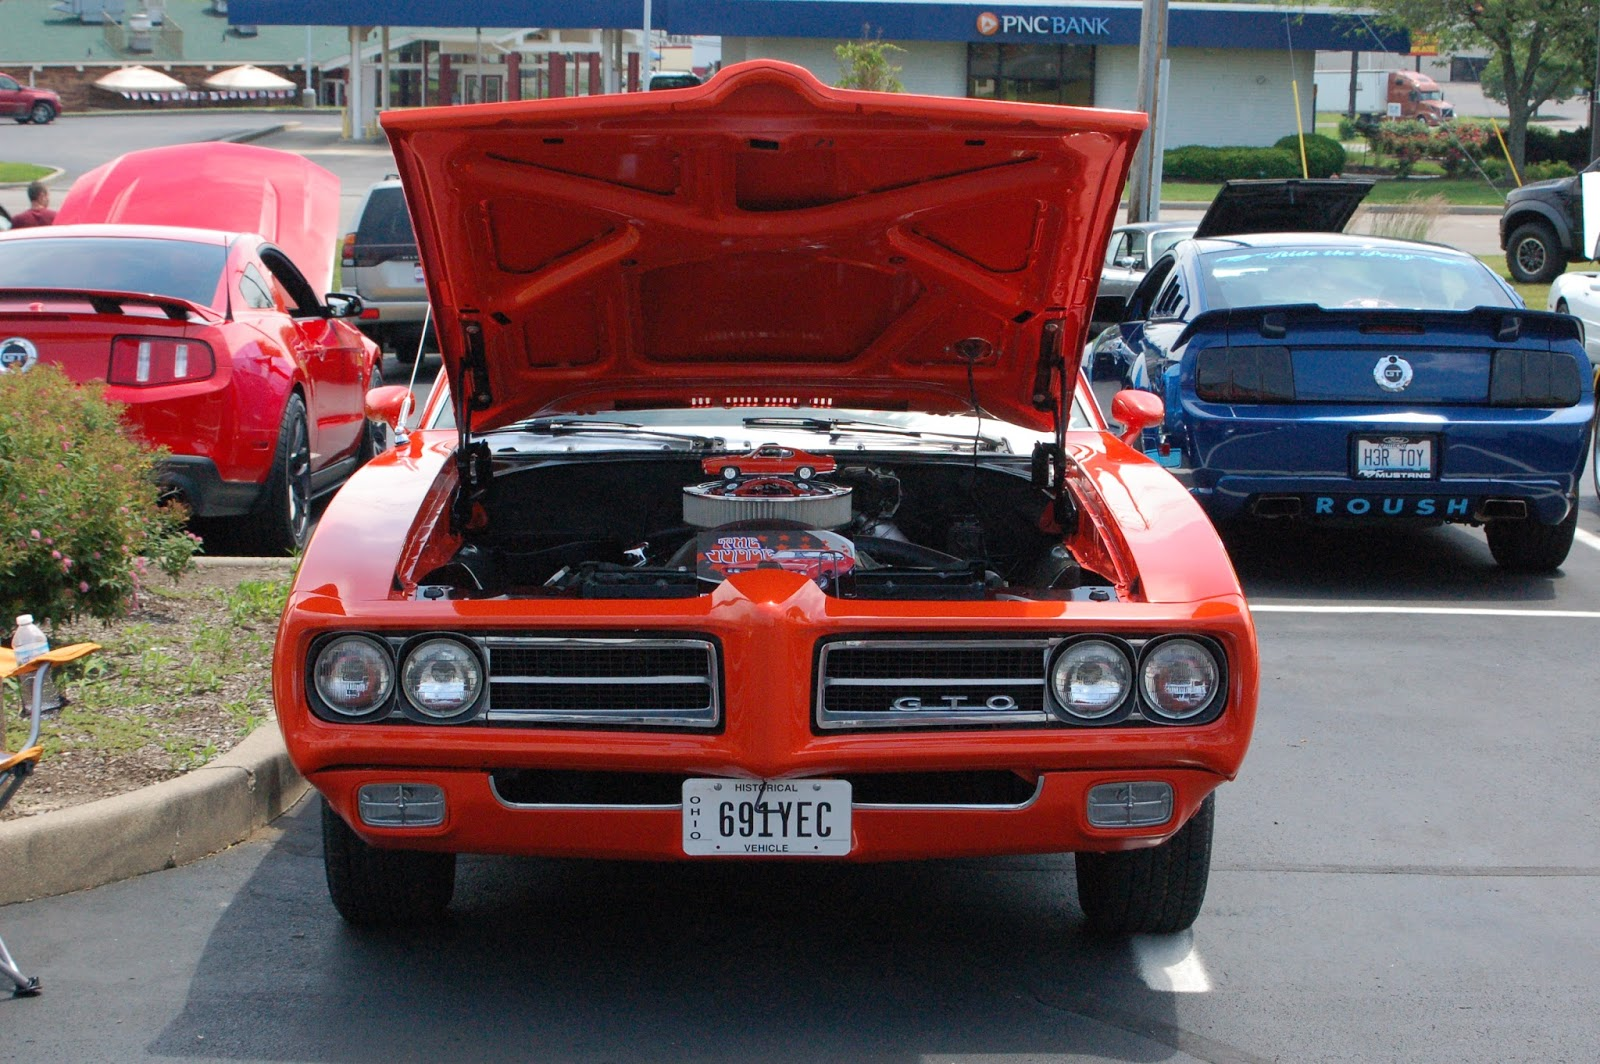 Turnerbudds Car Blog You Be The Judge 1960s Pontiac Gto When Second Generation Of Goat Came Out In 1968 One Its Trims Was Called Name Like Used For Road Runner